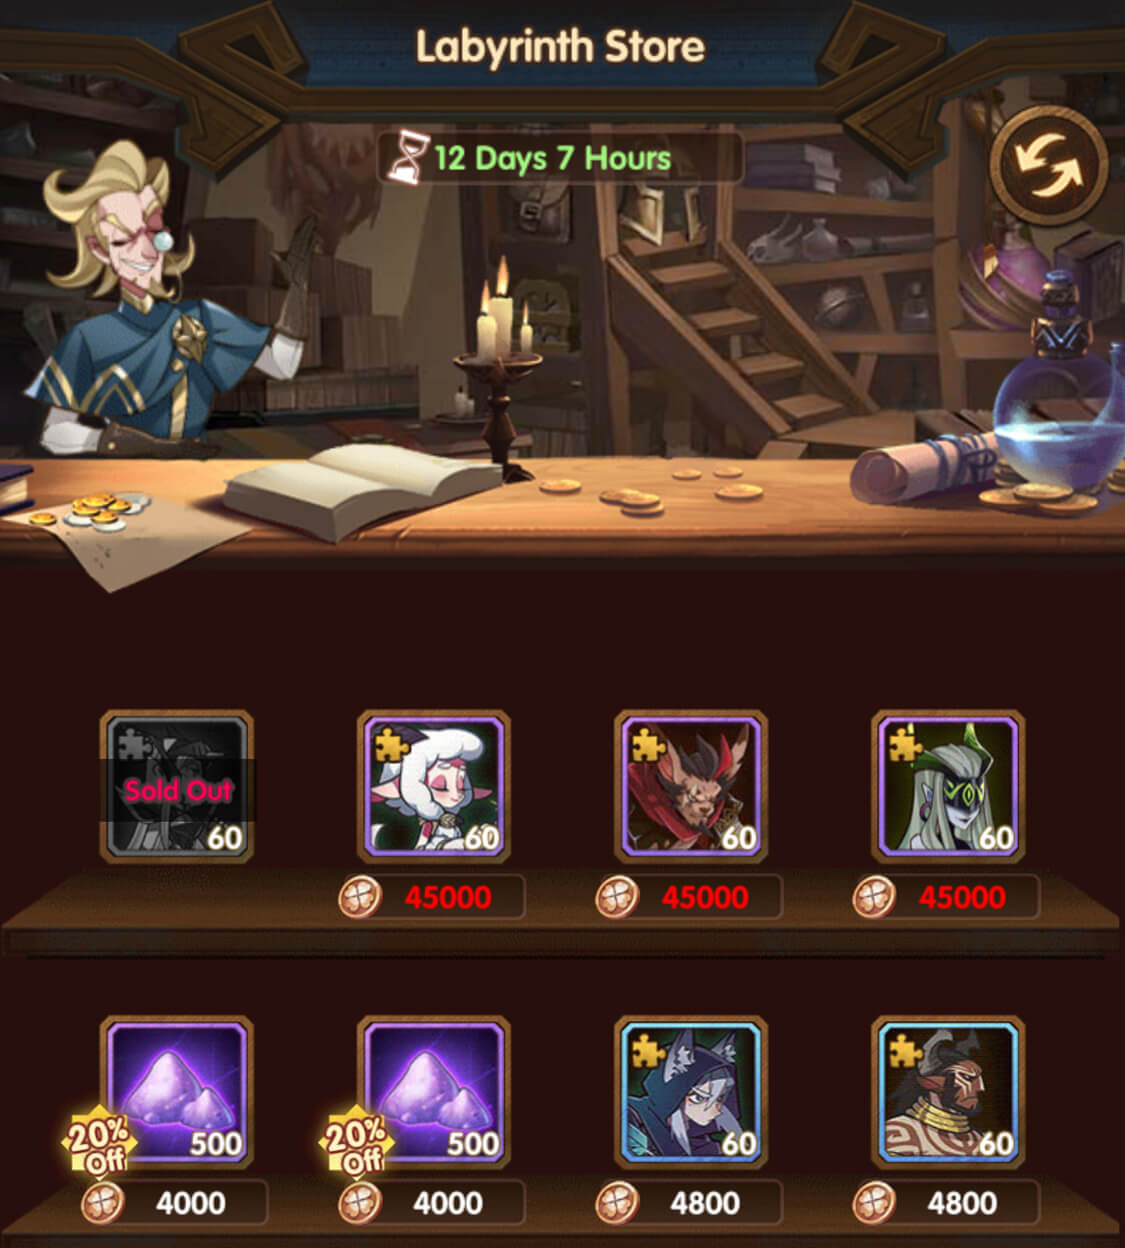 Labyrinth Store AFK Arena